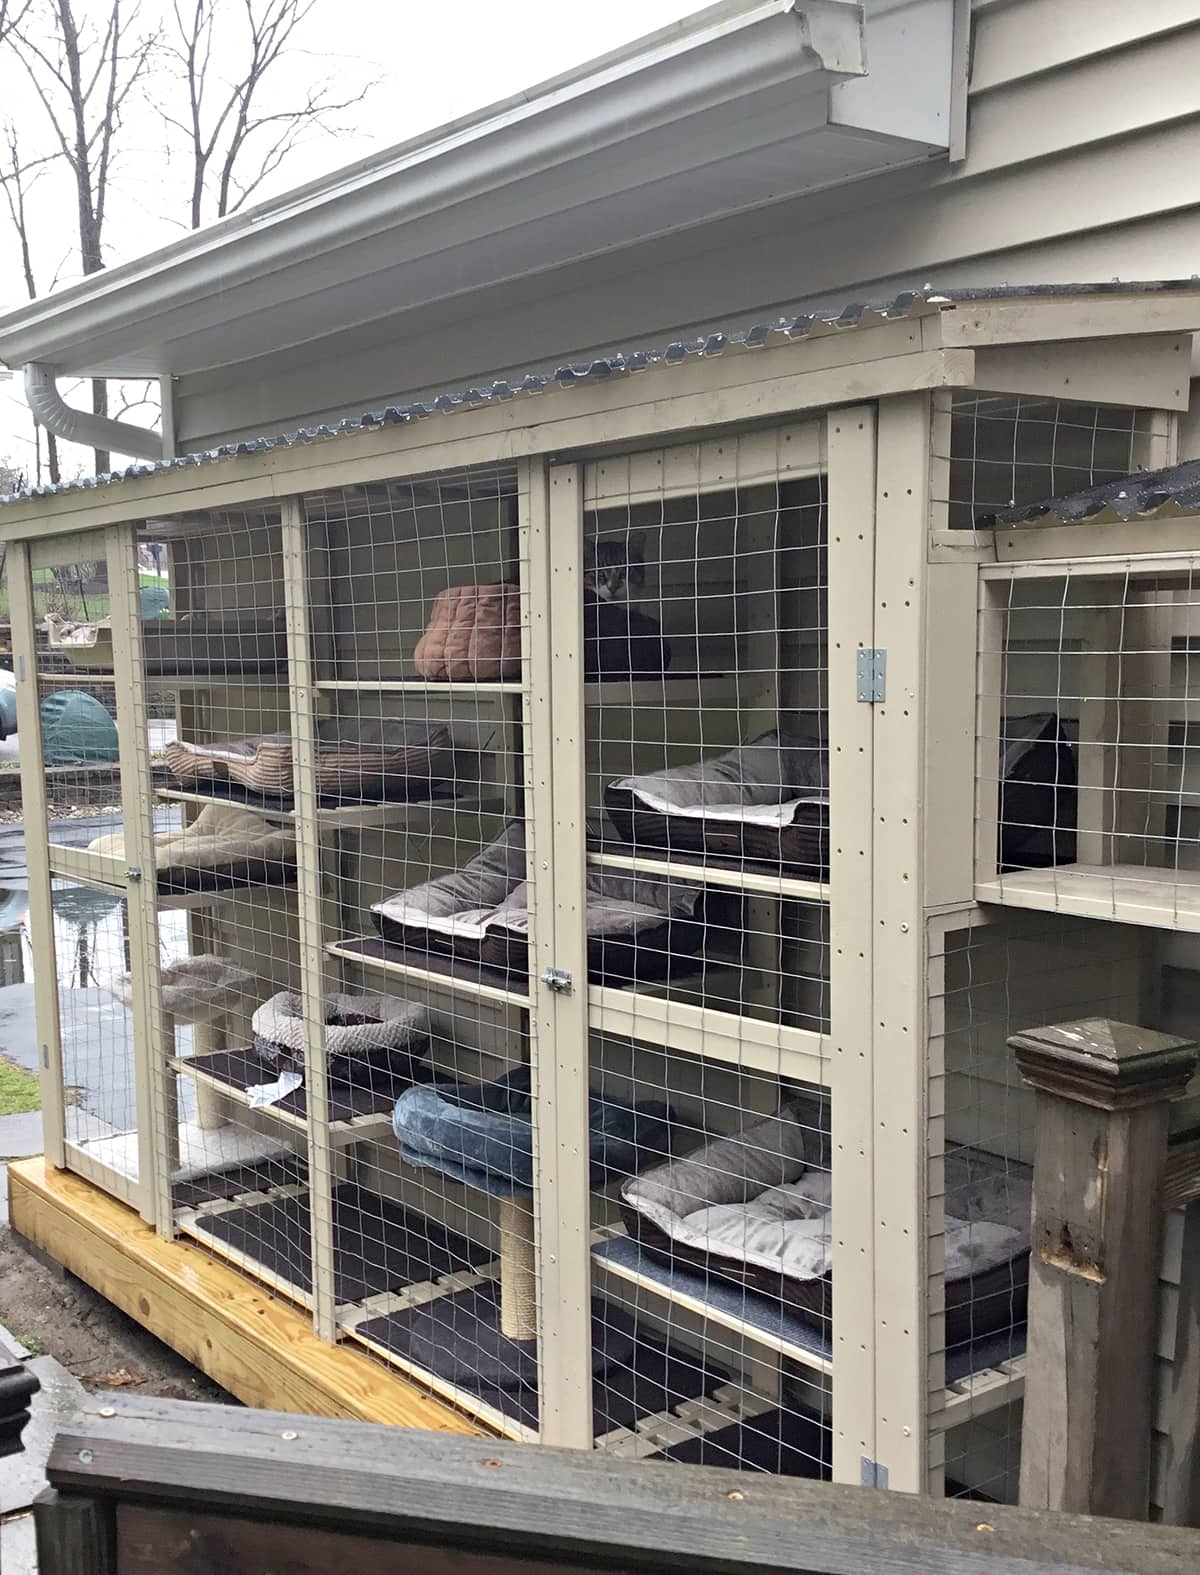 four column shelving unit turned into outdoor cat cage with roof